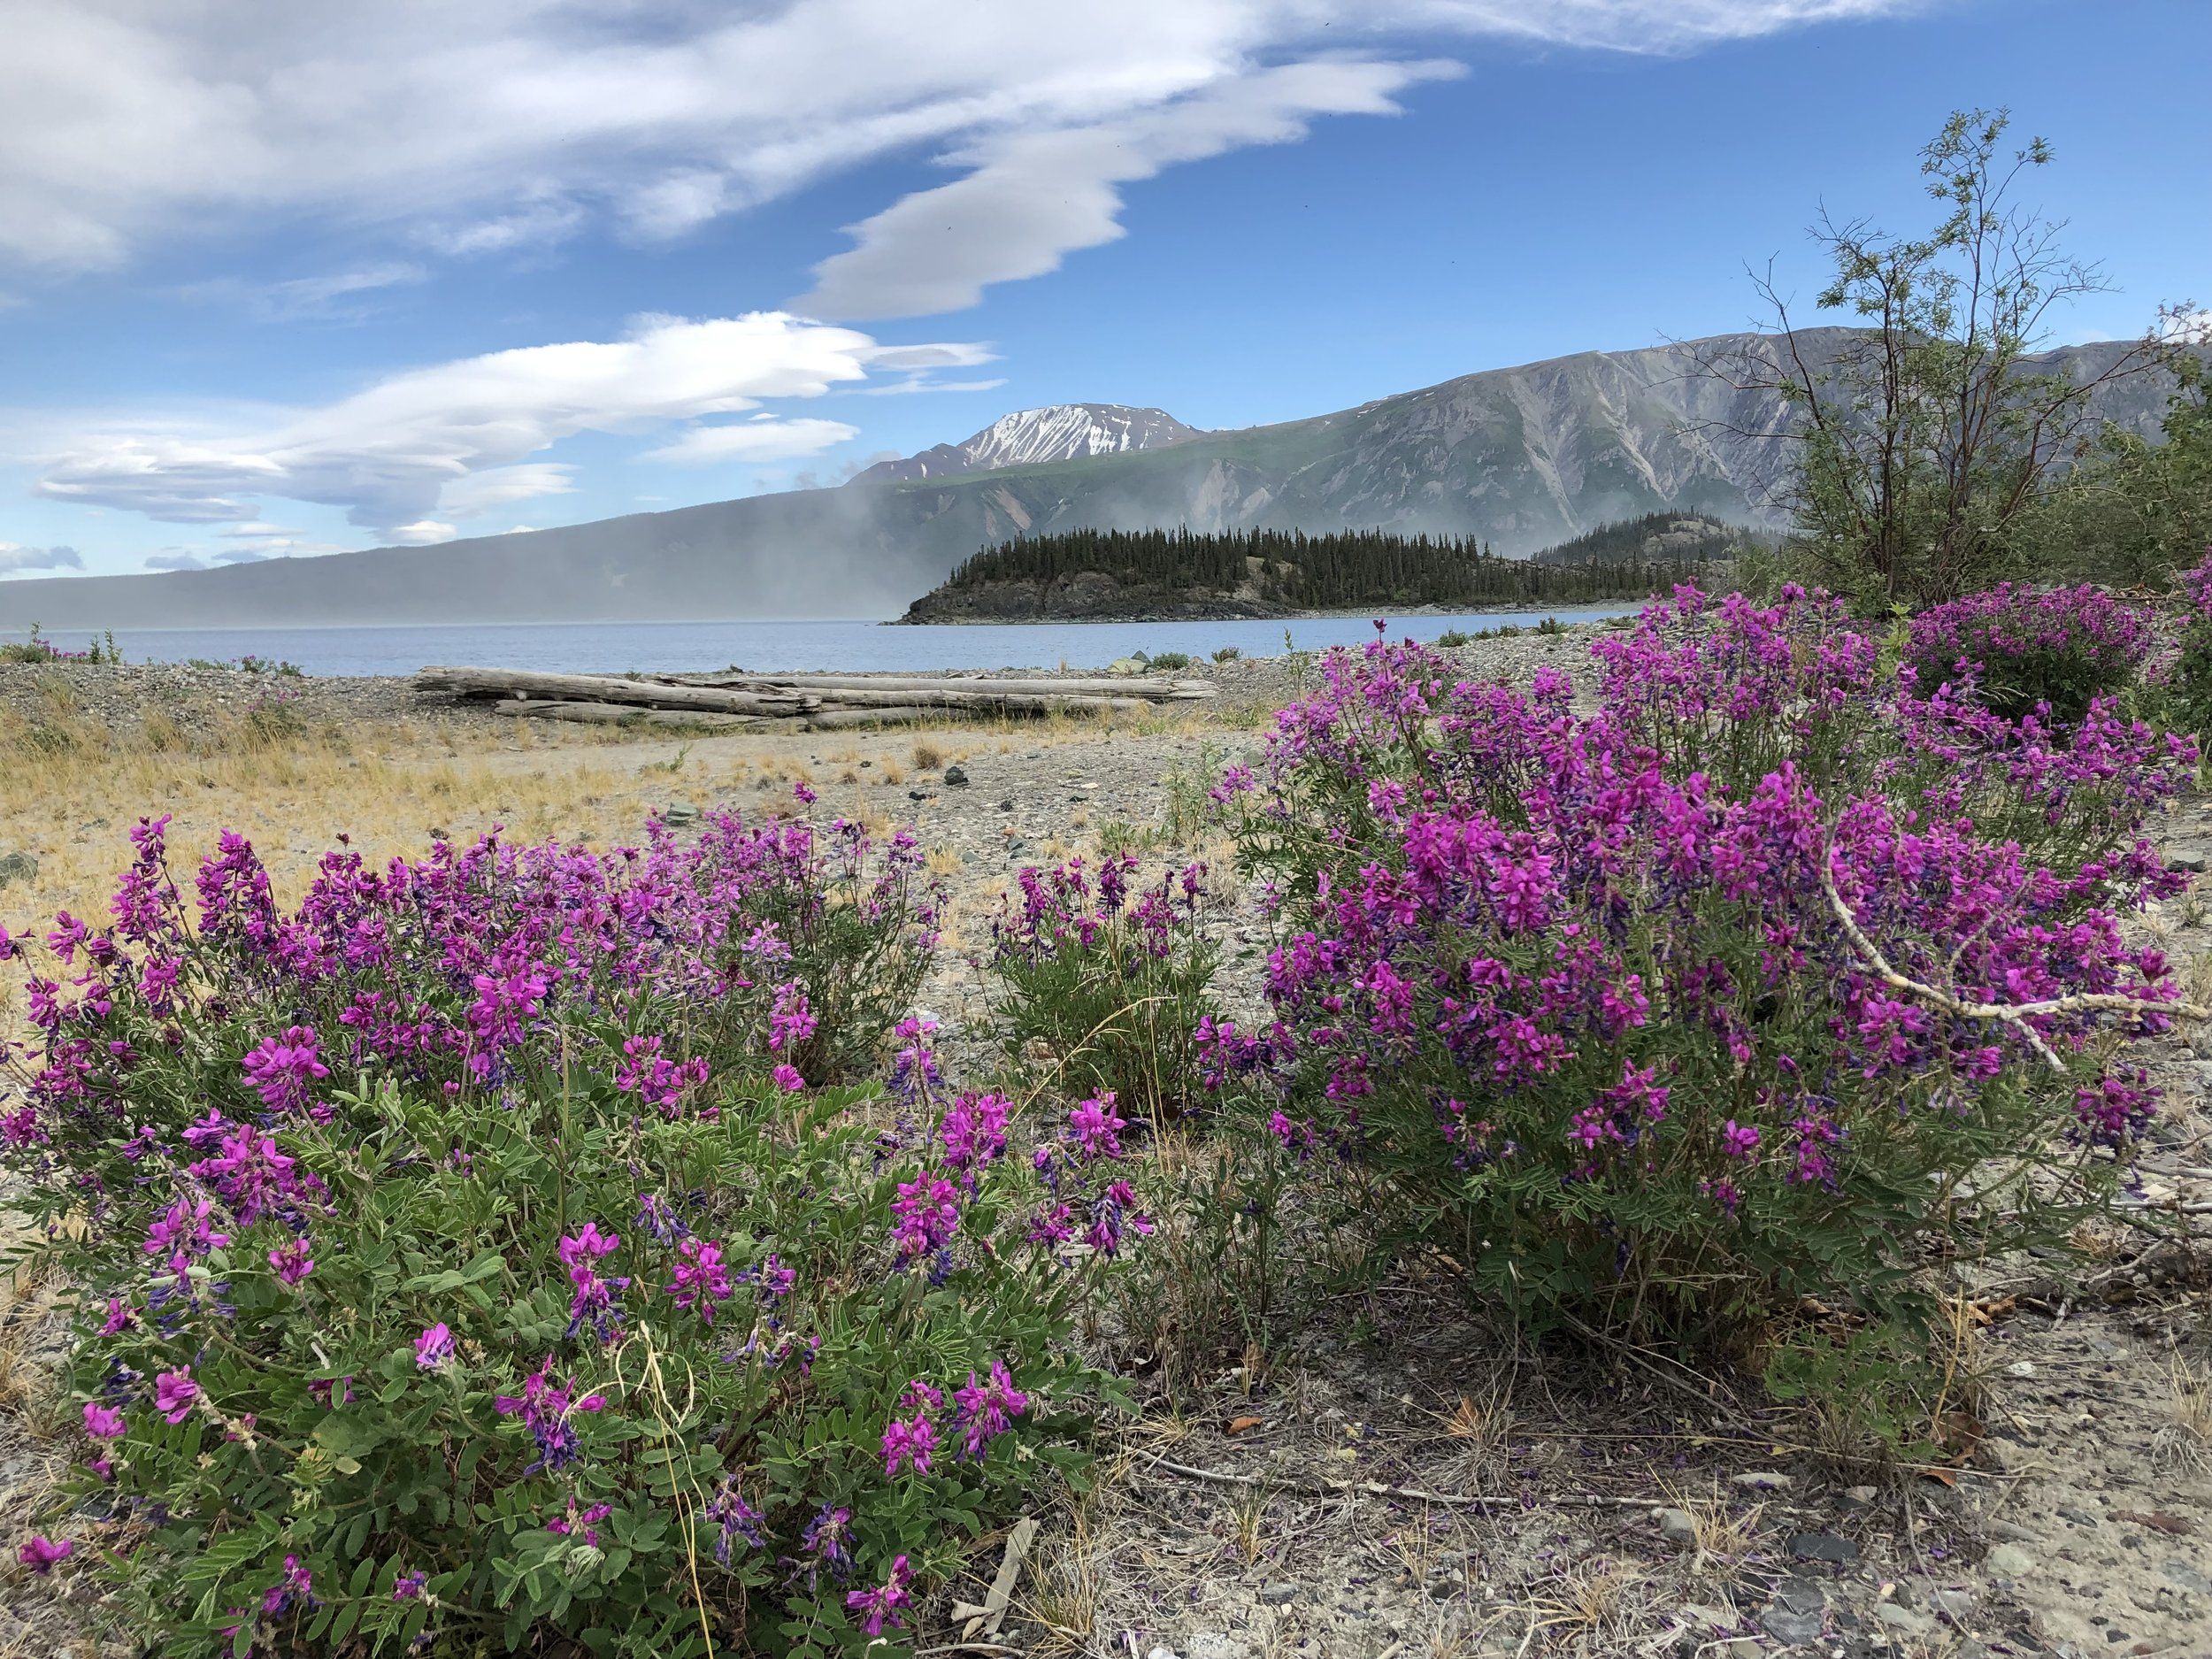 The wildflower game is on point up here, these beauties were growing by Kluane Lake in the Yukon.